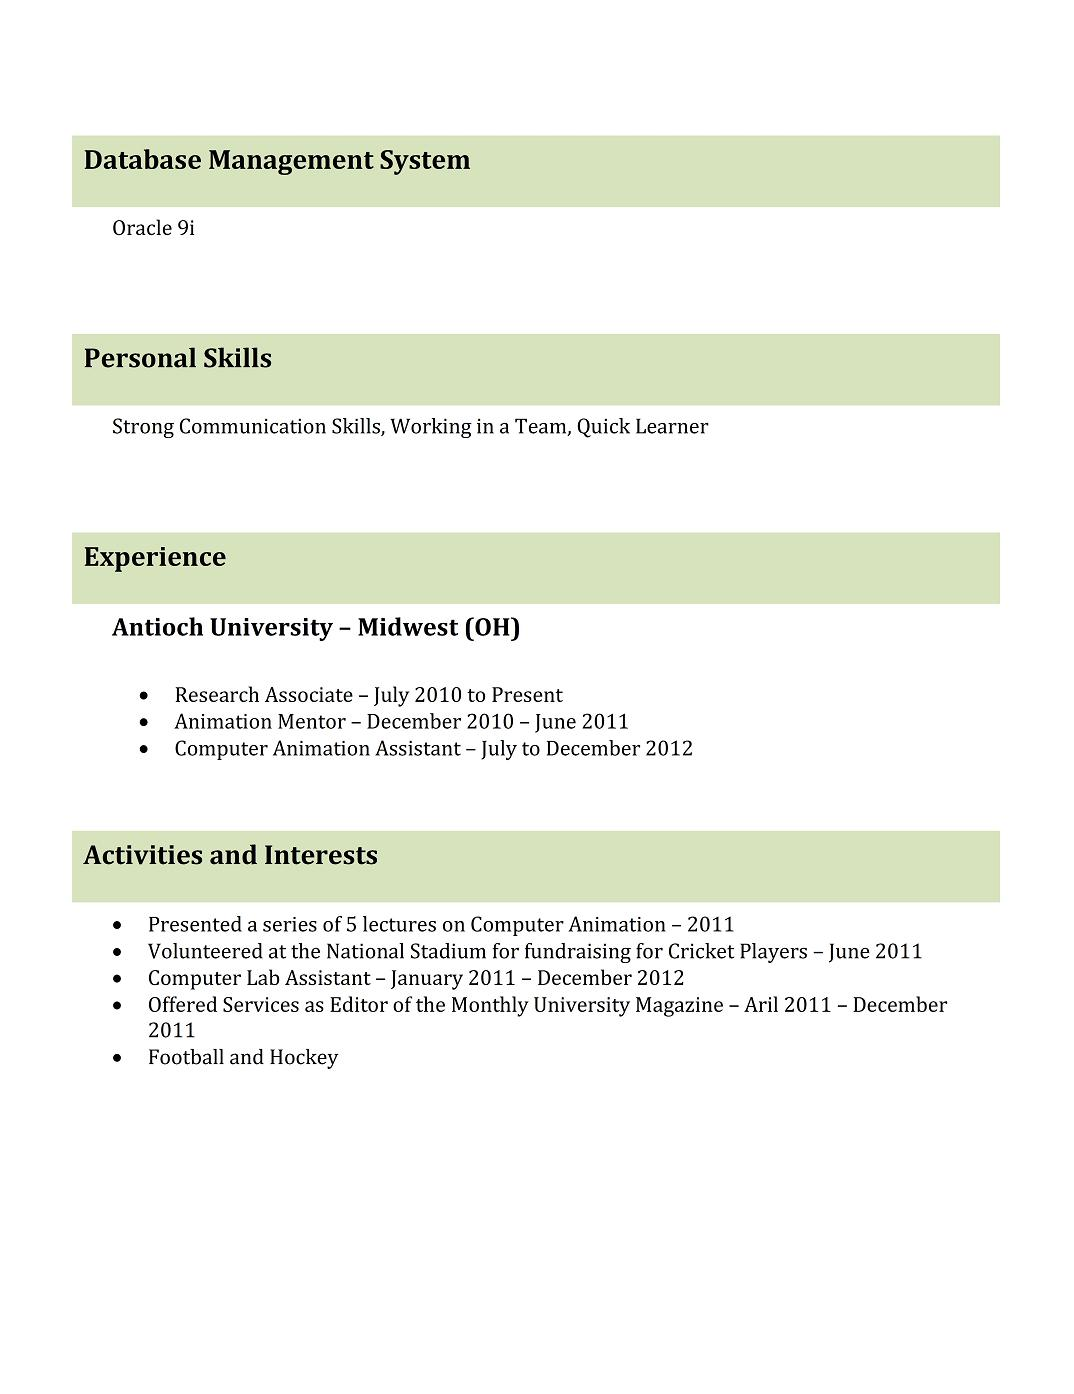 resume format different types different type of resumes different how to write resume format write resume format free professional